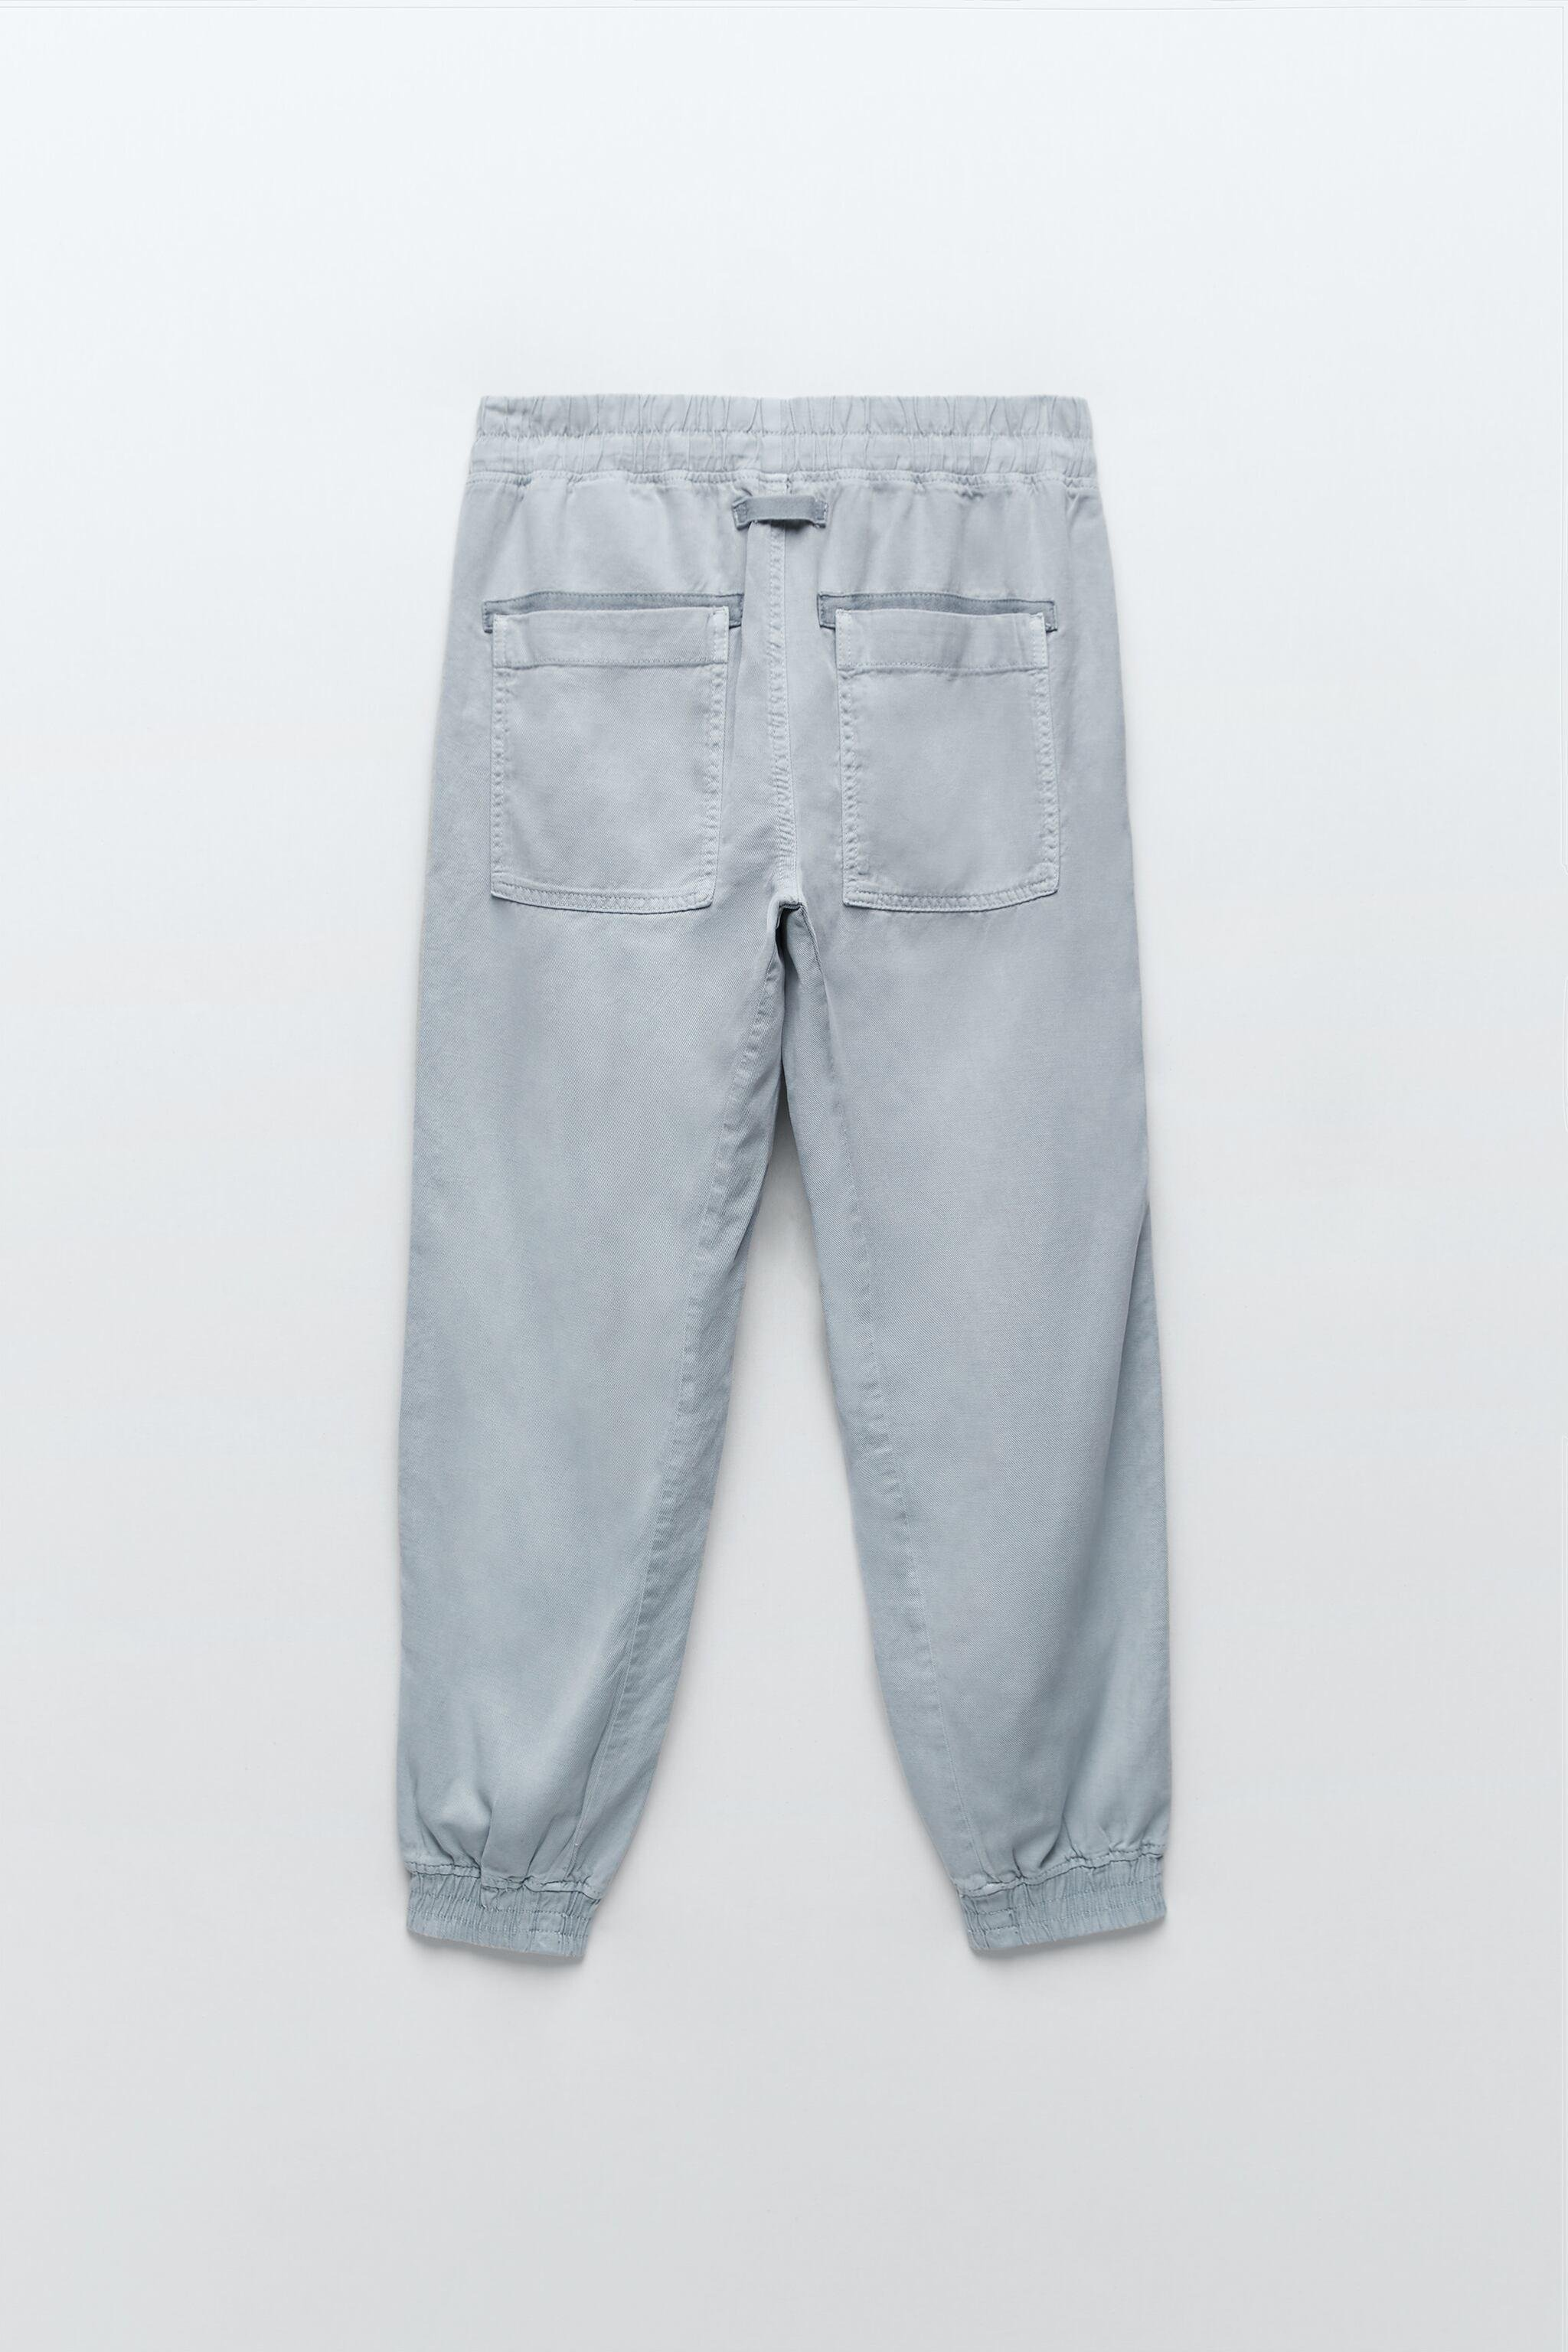 THE WEEKEND JOGGER PANTS 7